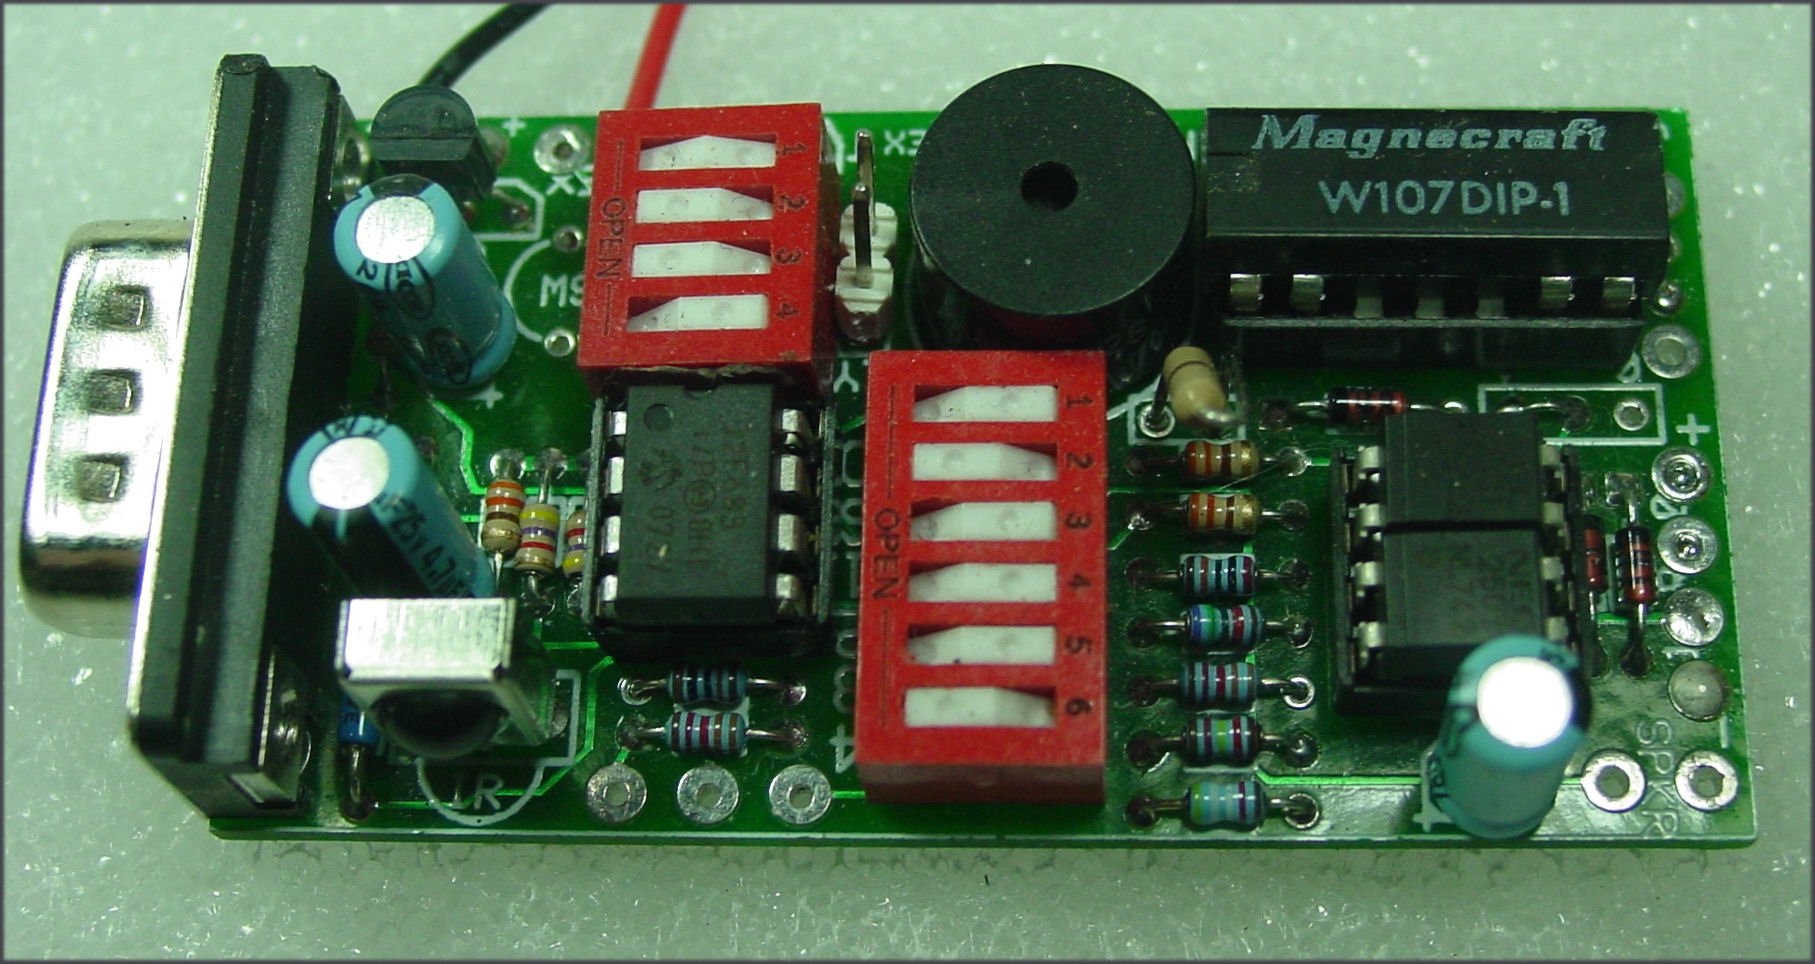 Qrpme Qrp Fun In Cans Boxes And From Scratch Picaxe Programming Circuit Picture Of Hatchet Kit